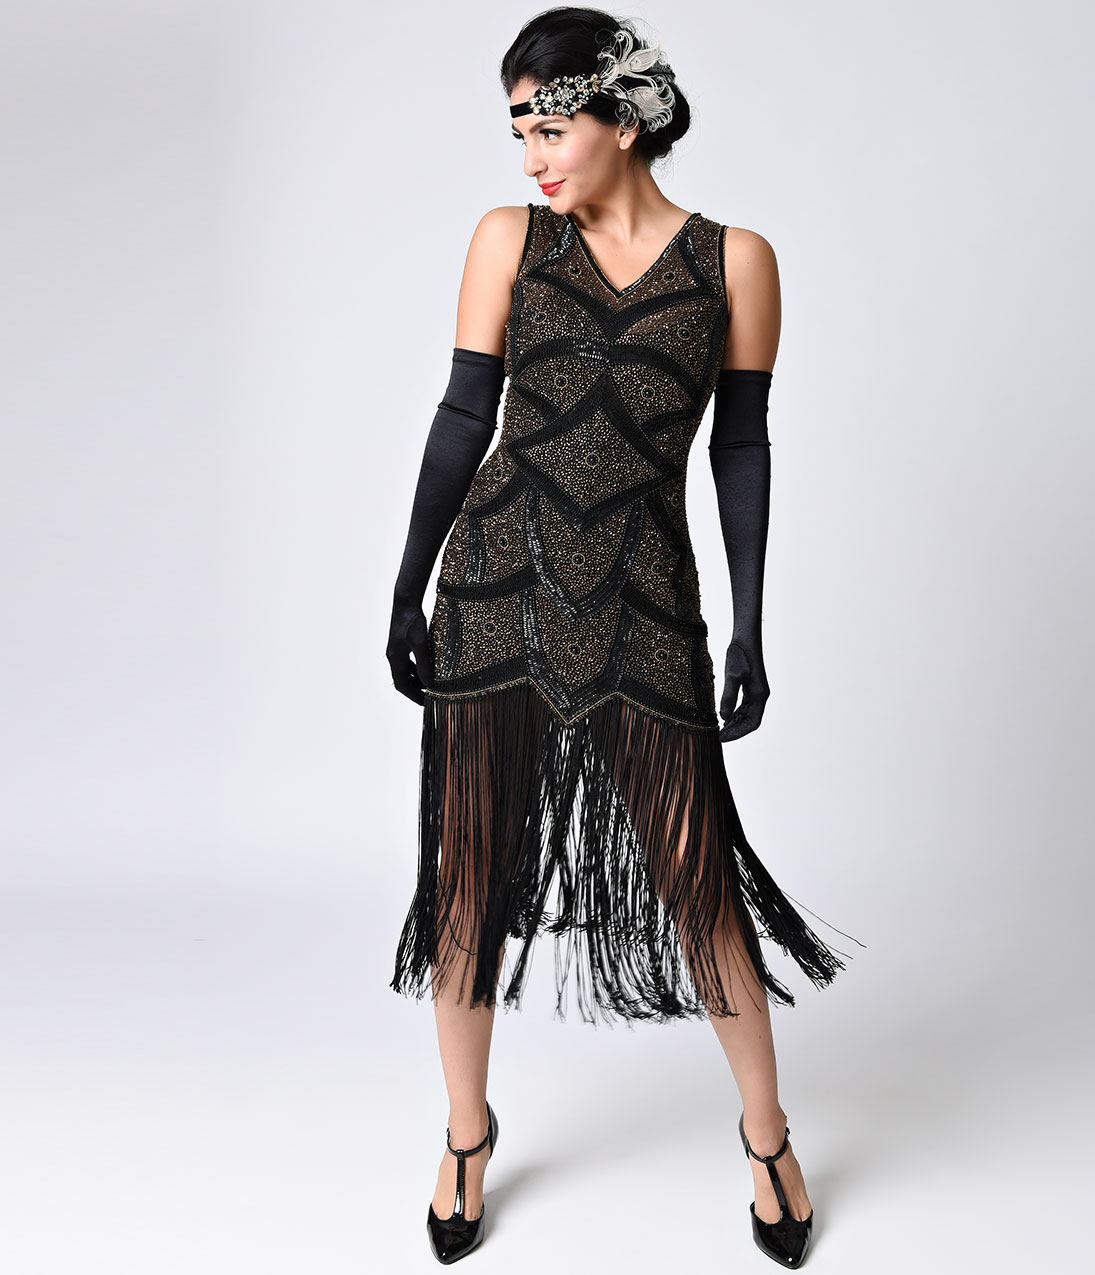 Flapper Dresses – How to Style Them Properly